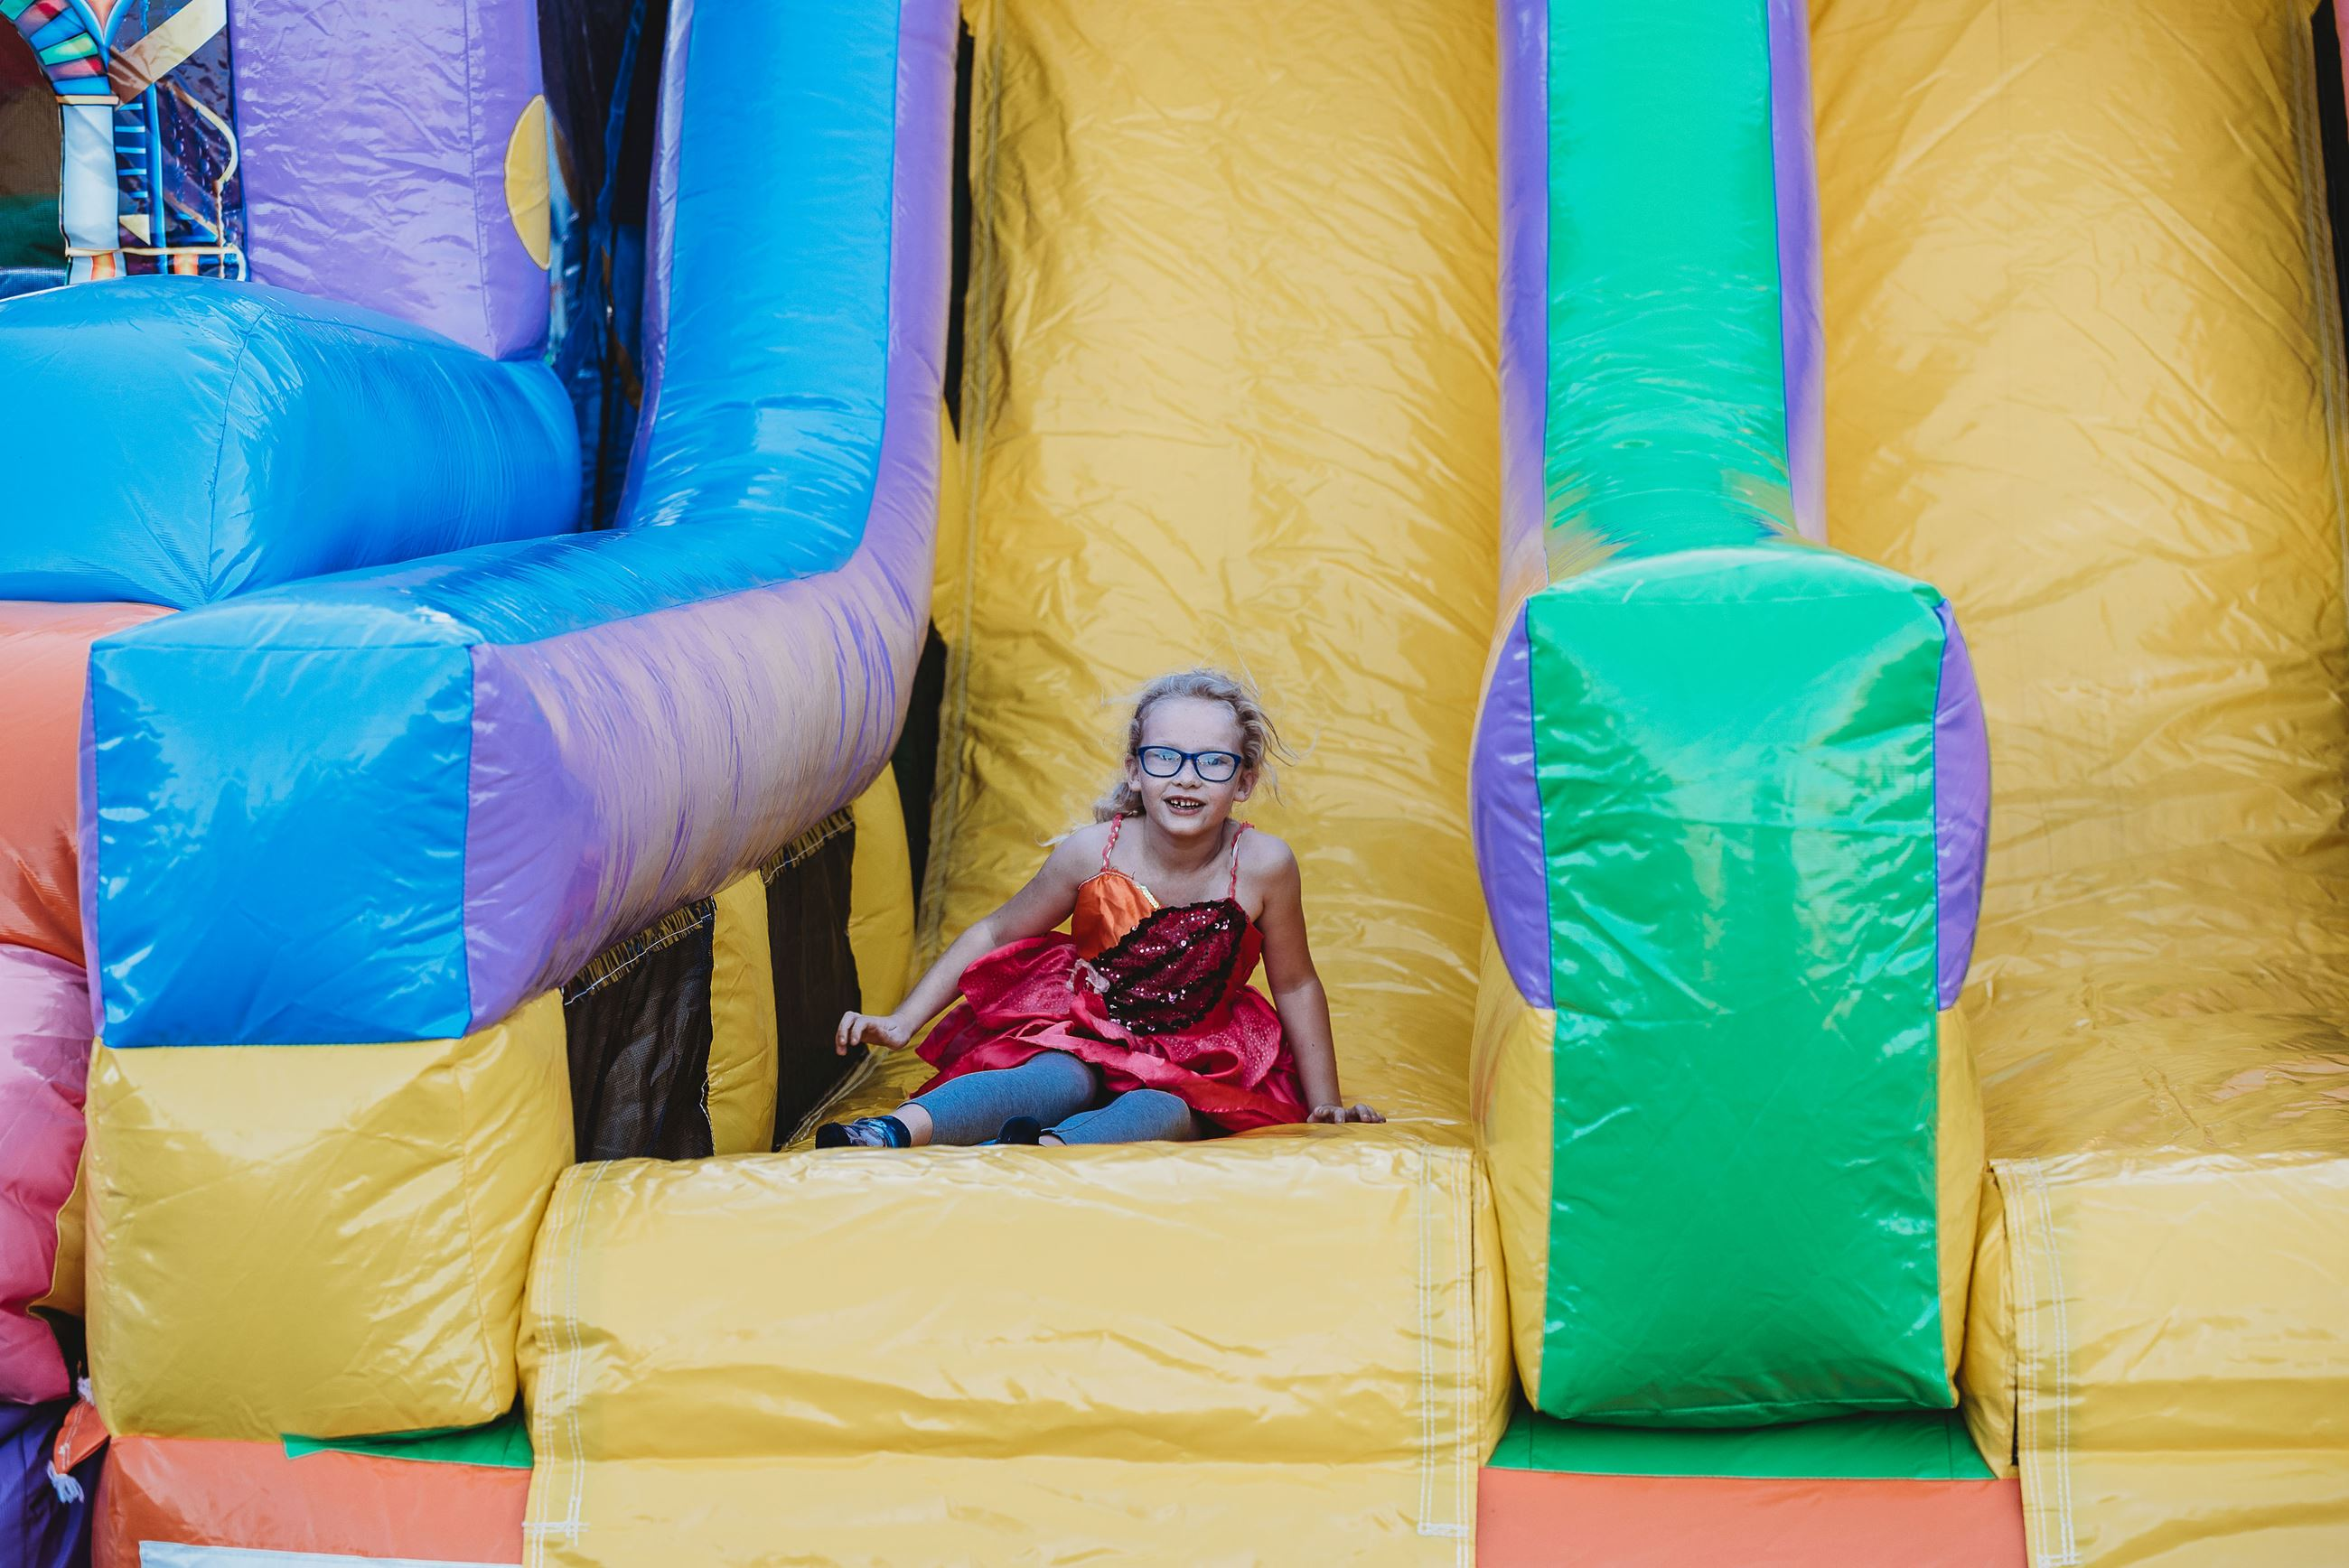 Little Girl Reaches the Bottom of an Inflatable Slide